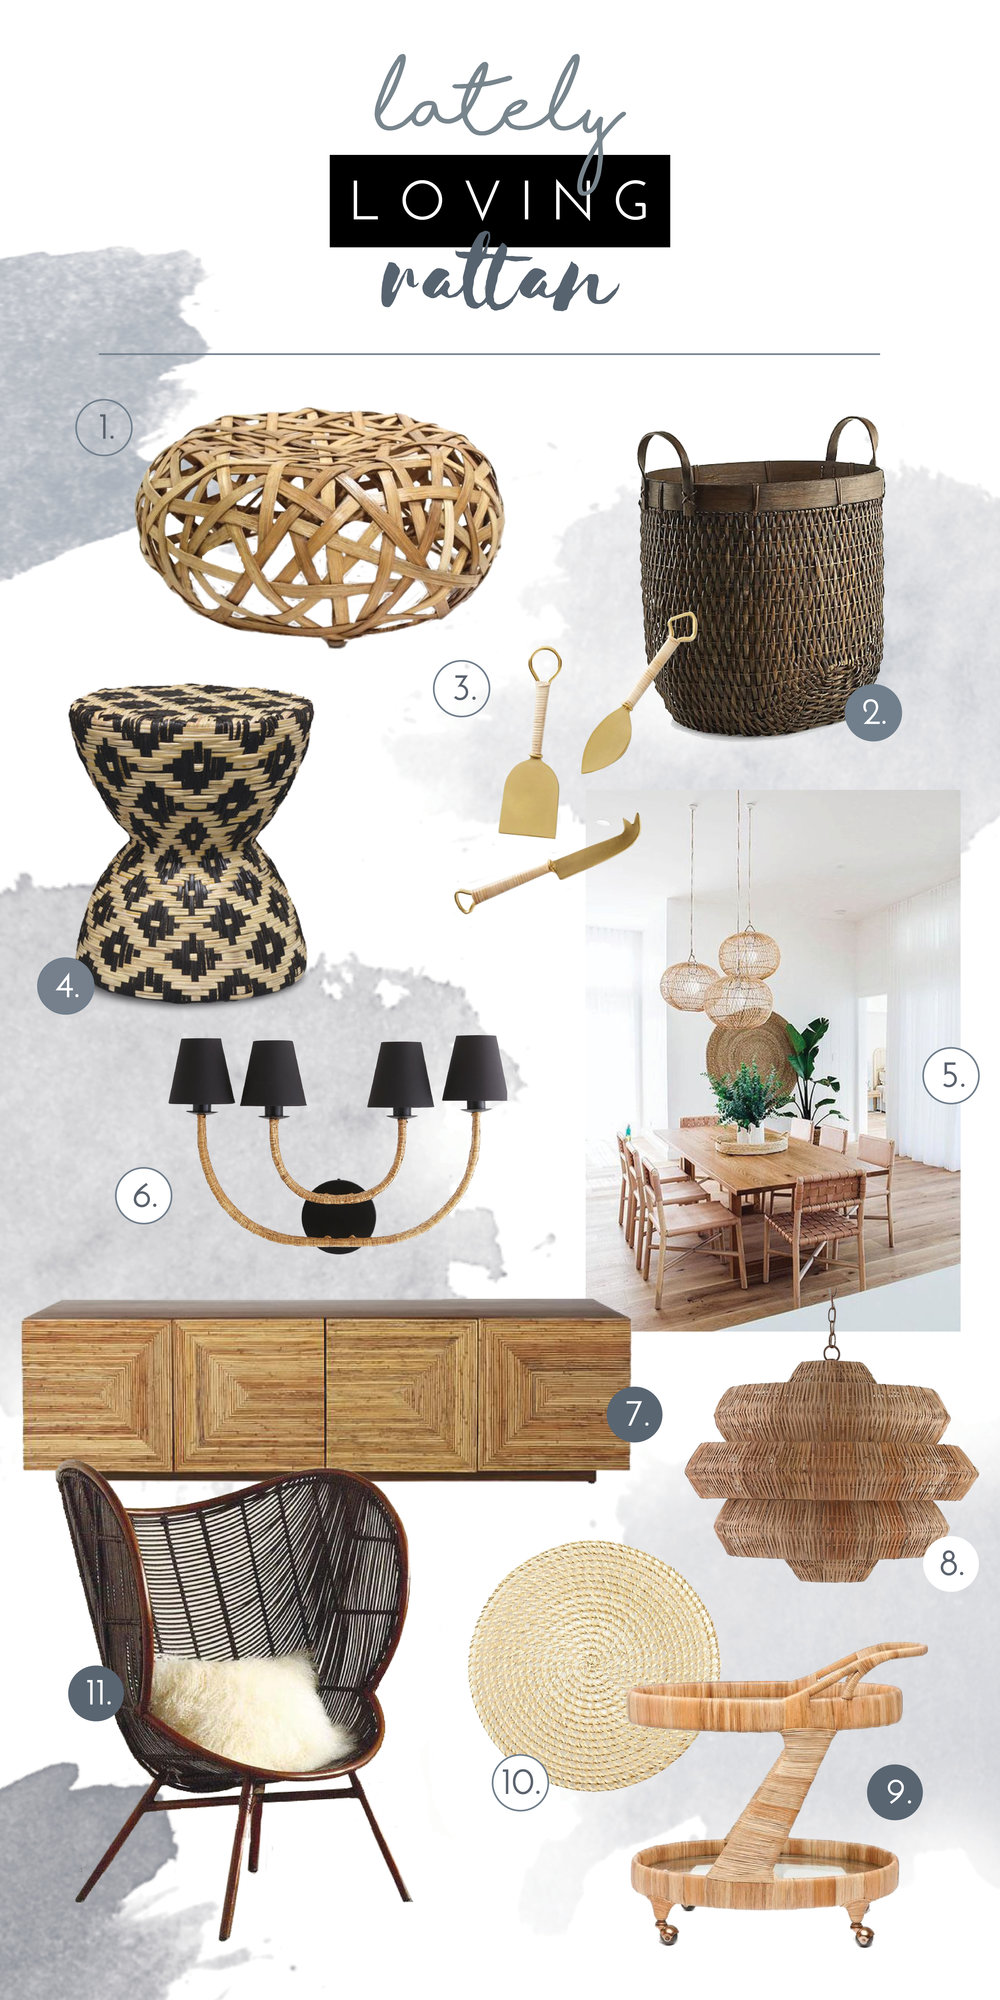 1.   Ottoman   | 2.   Basket   | 3.   Knife Set   | 4.   Side Table   | 5.   Image   | 6.   Wall Sconce   | 7.   Credenza   | 8.   Chandelier   | 9.   Bar Cart   | 10.   Placemat   | 11.   Chair